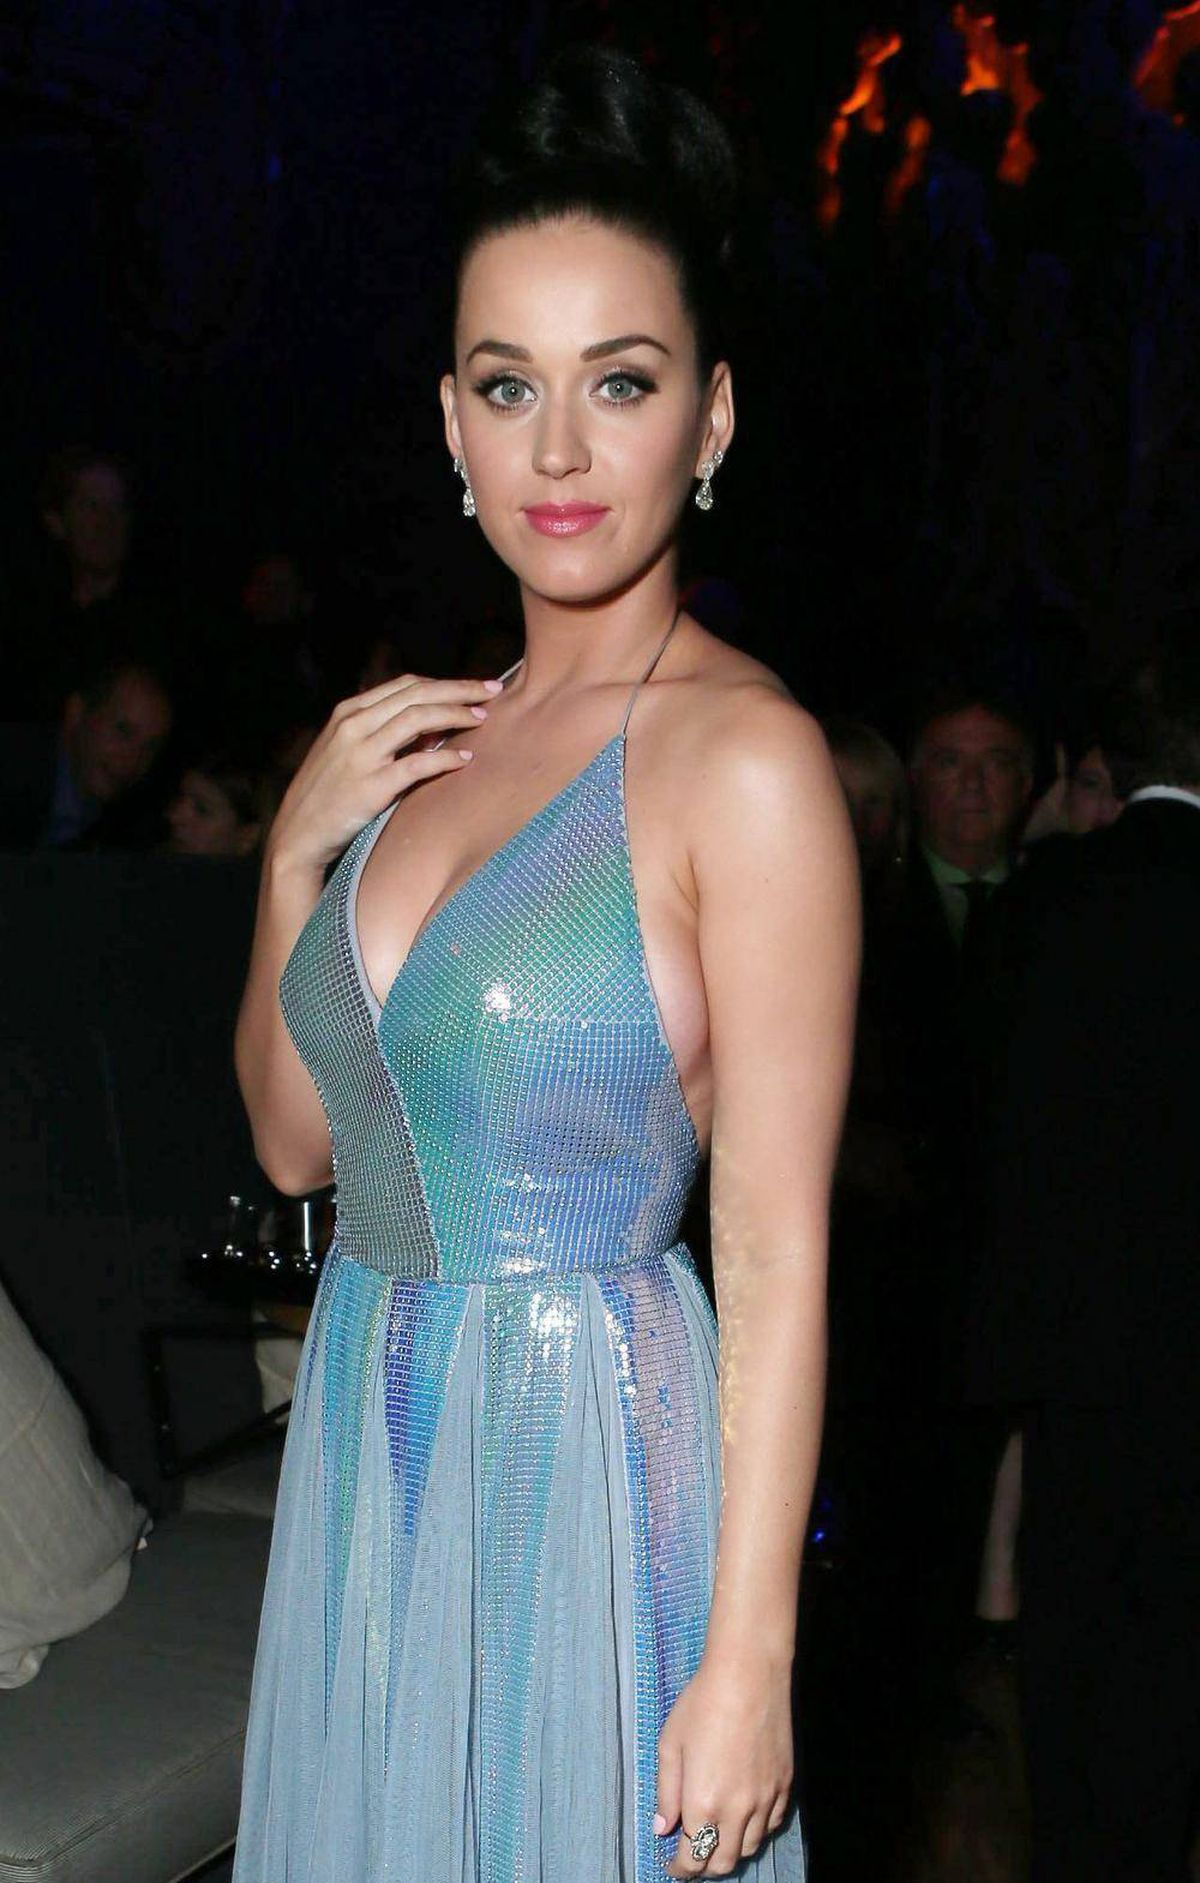 Katy Perry shares her latest piercing on Instagram - The Globe and Mail